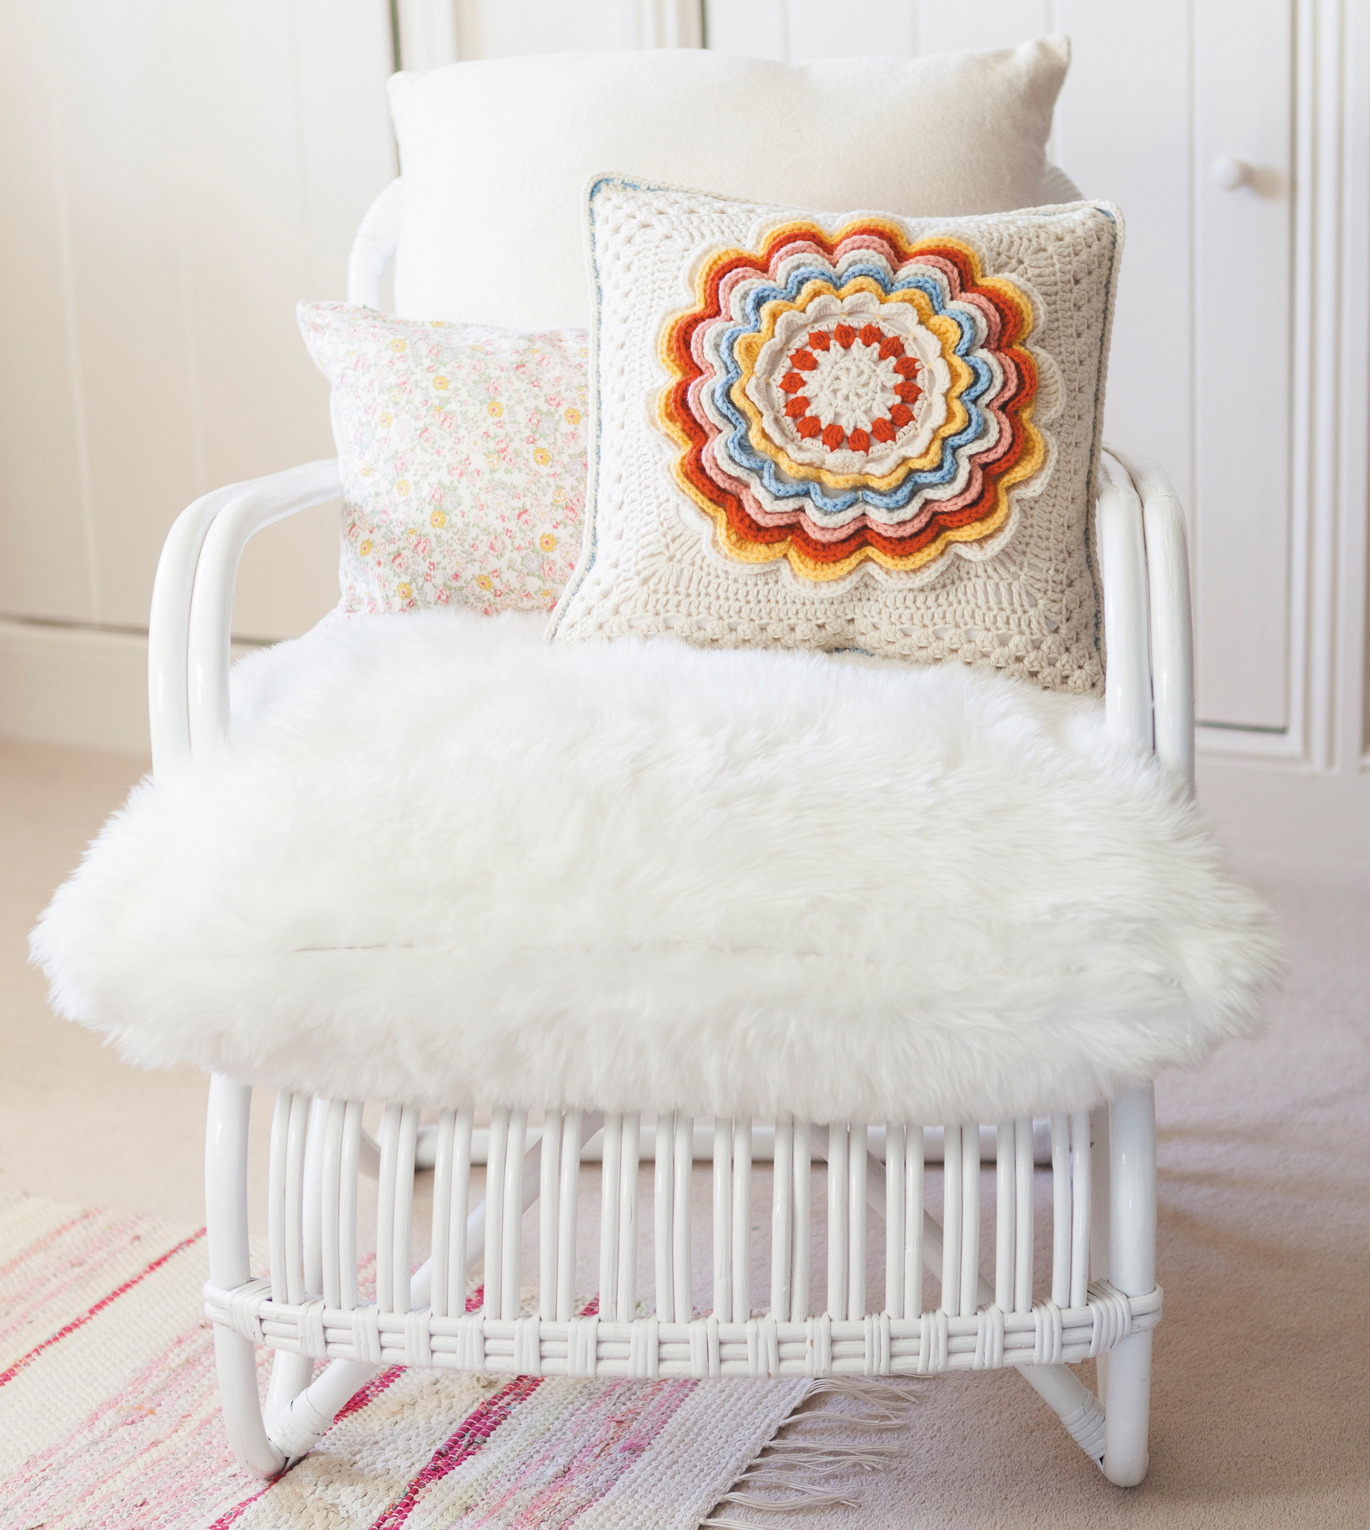 Fabulous Rose Cushion from Crochet Home by Emma Lamb